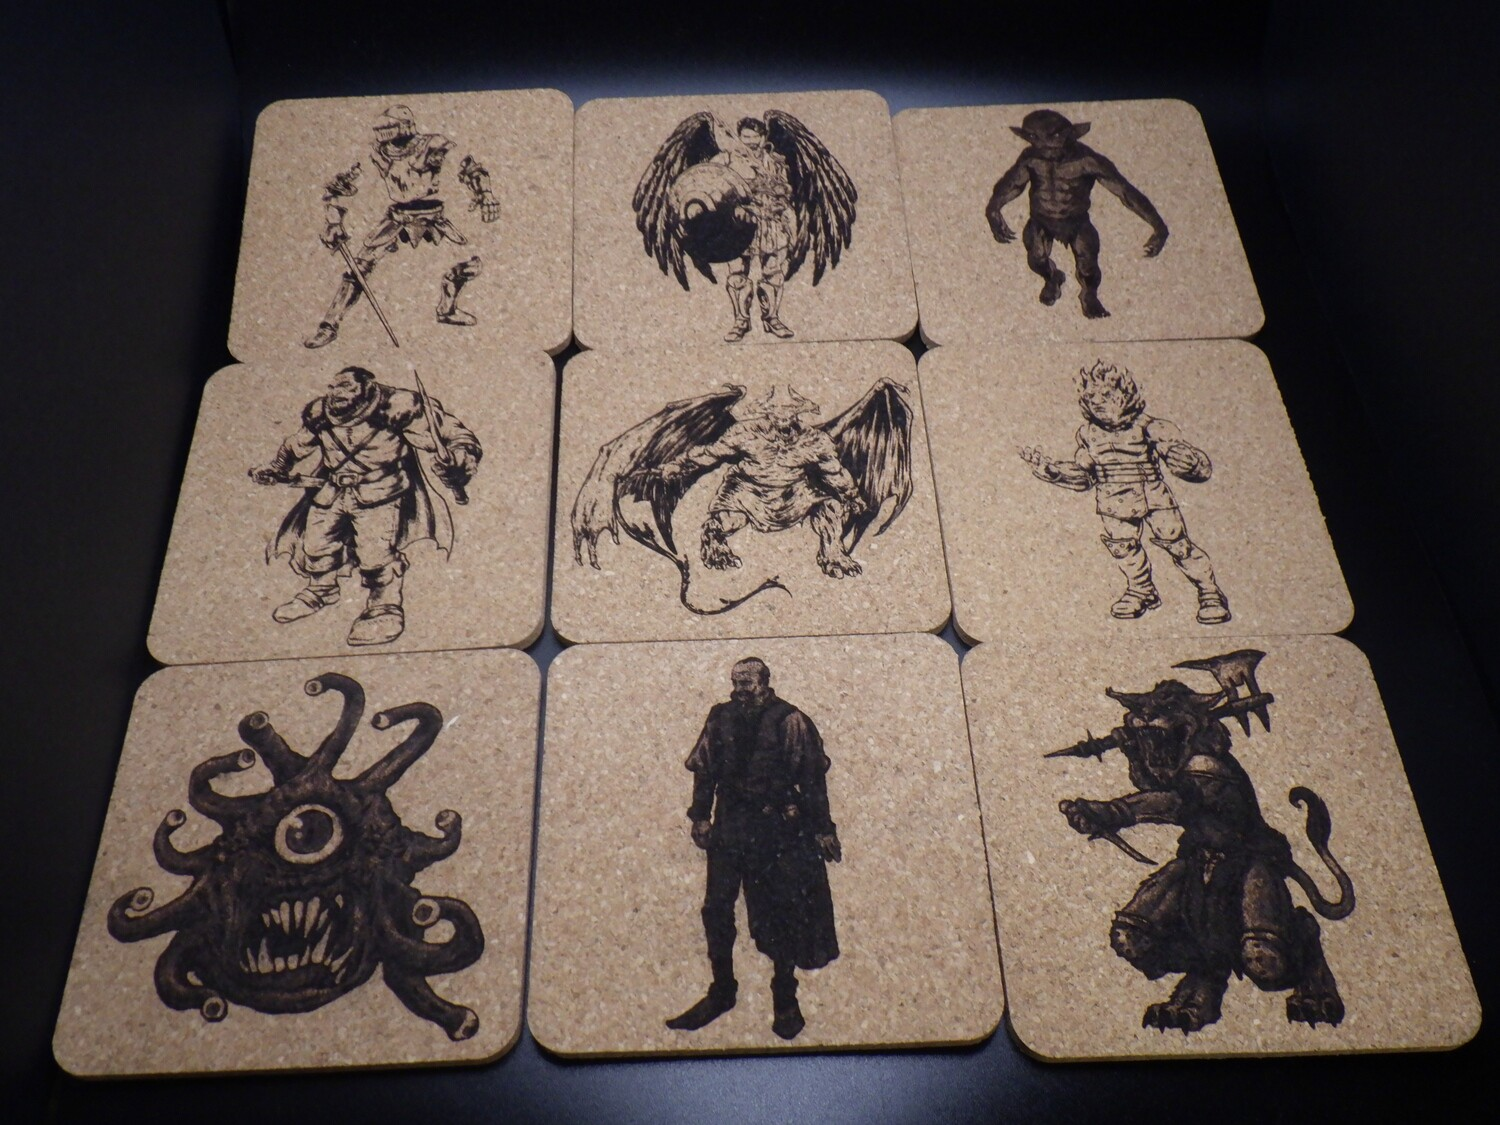 Fantasy Monsters Creatures RPG Tabletop Roleplay Games Custom Made Coaster Image Name Map - With or Without Felt Backings Optional Color